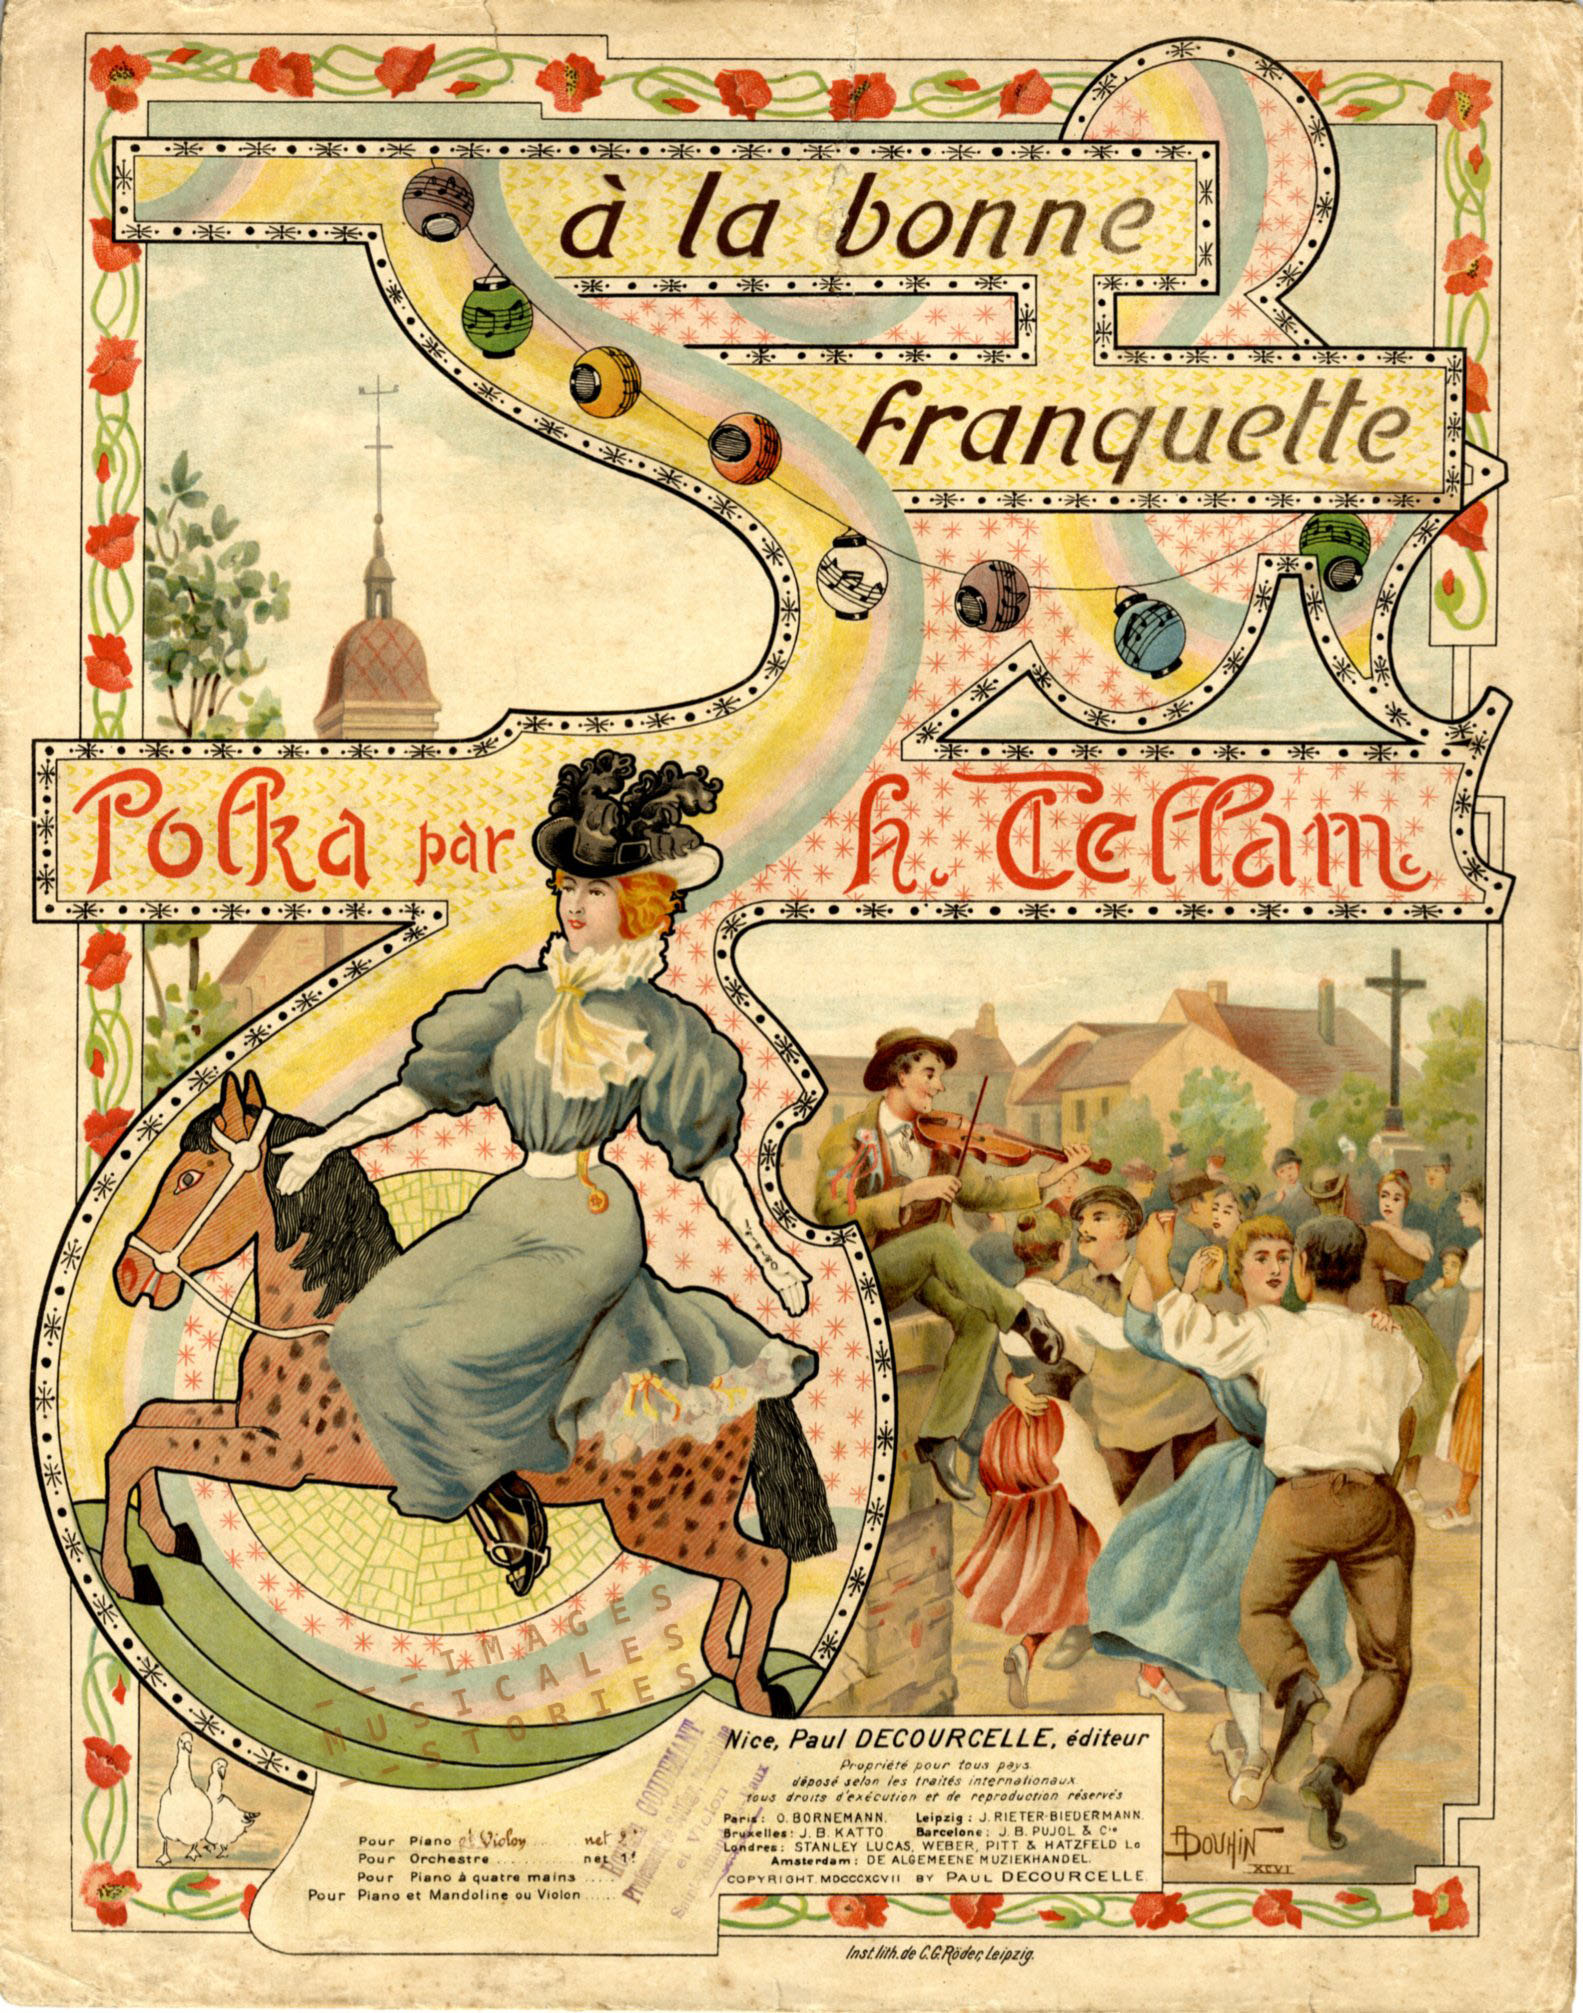 A. Douhin illustration foor sheet music cover 'A la bonnne franquette' (1897).